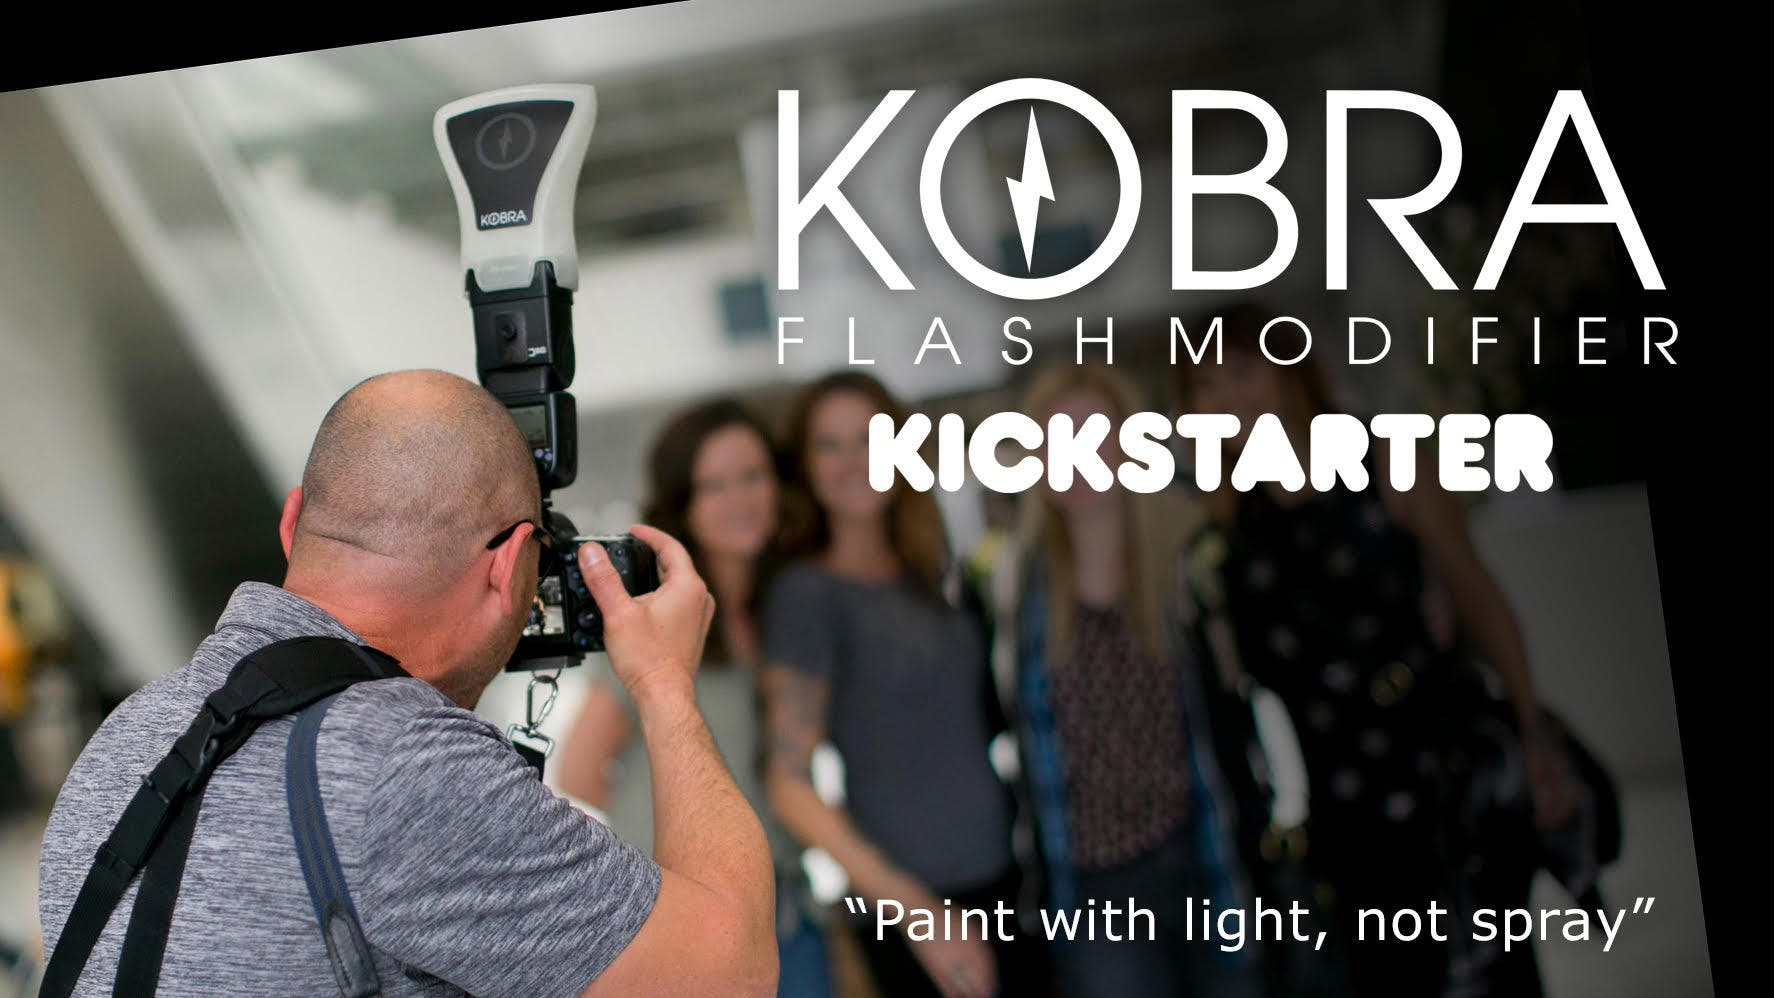 KOBRA Flash Modifier Is Still More or Less a Gary Fong Lightsphere